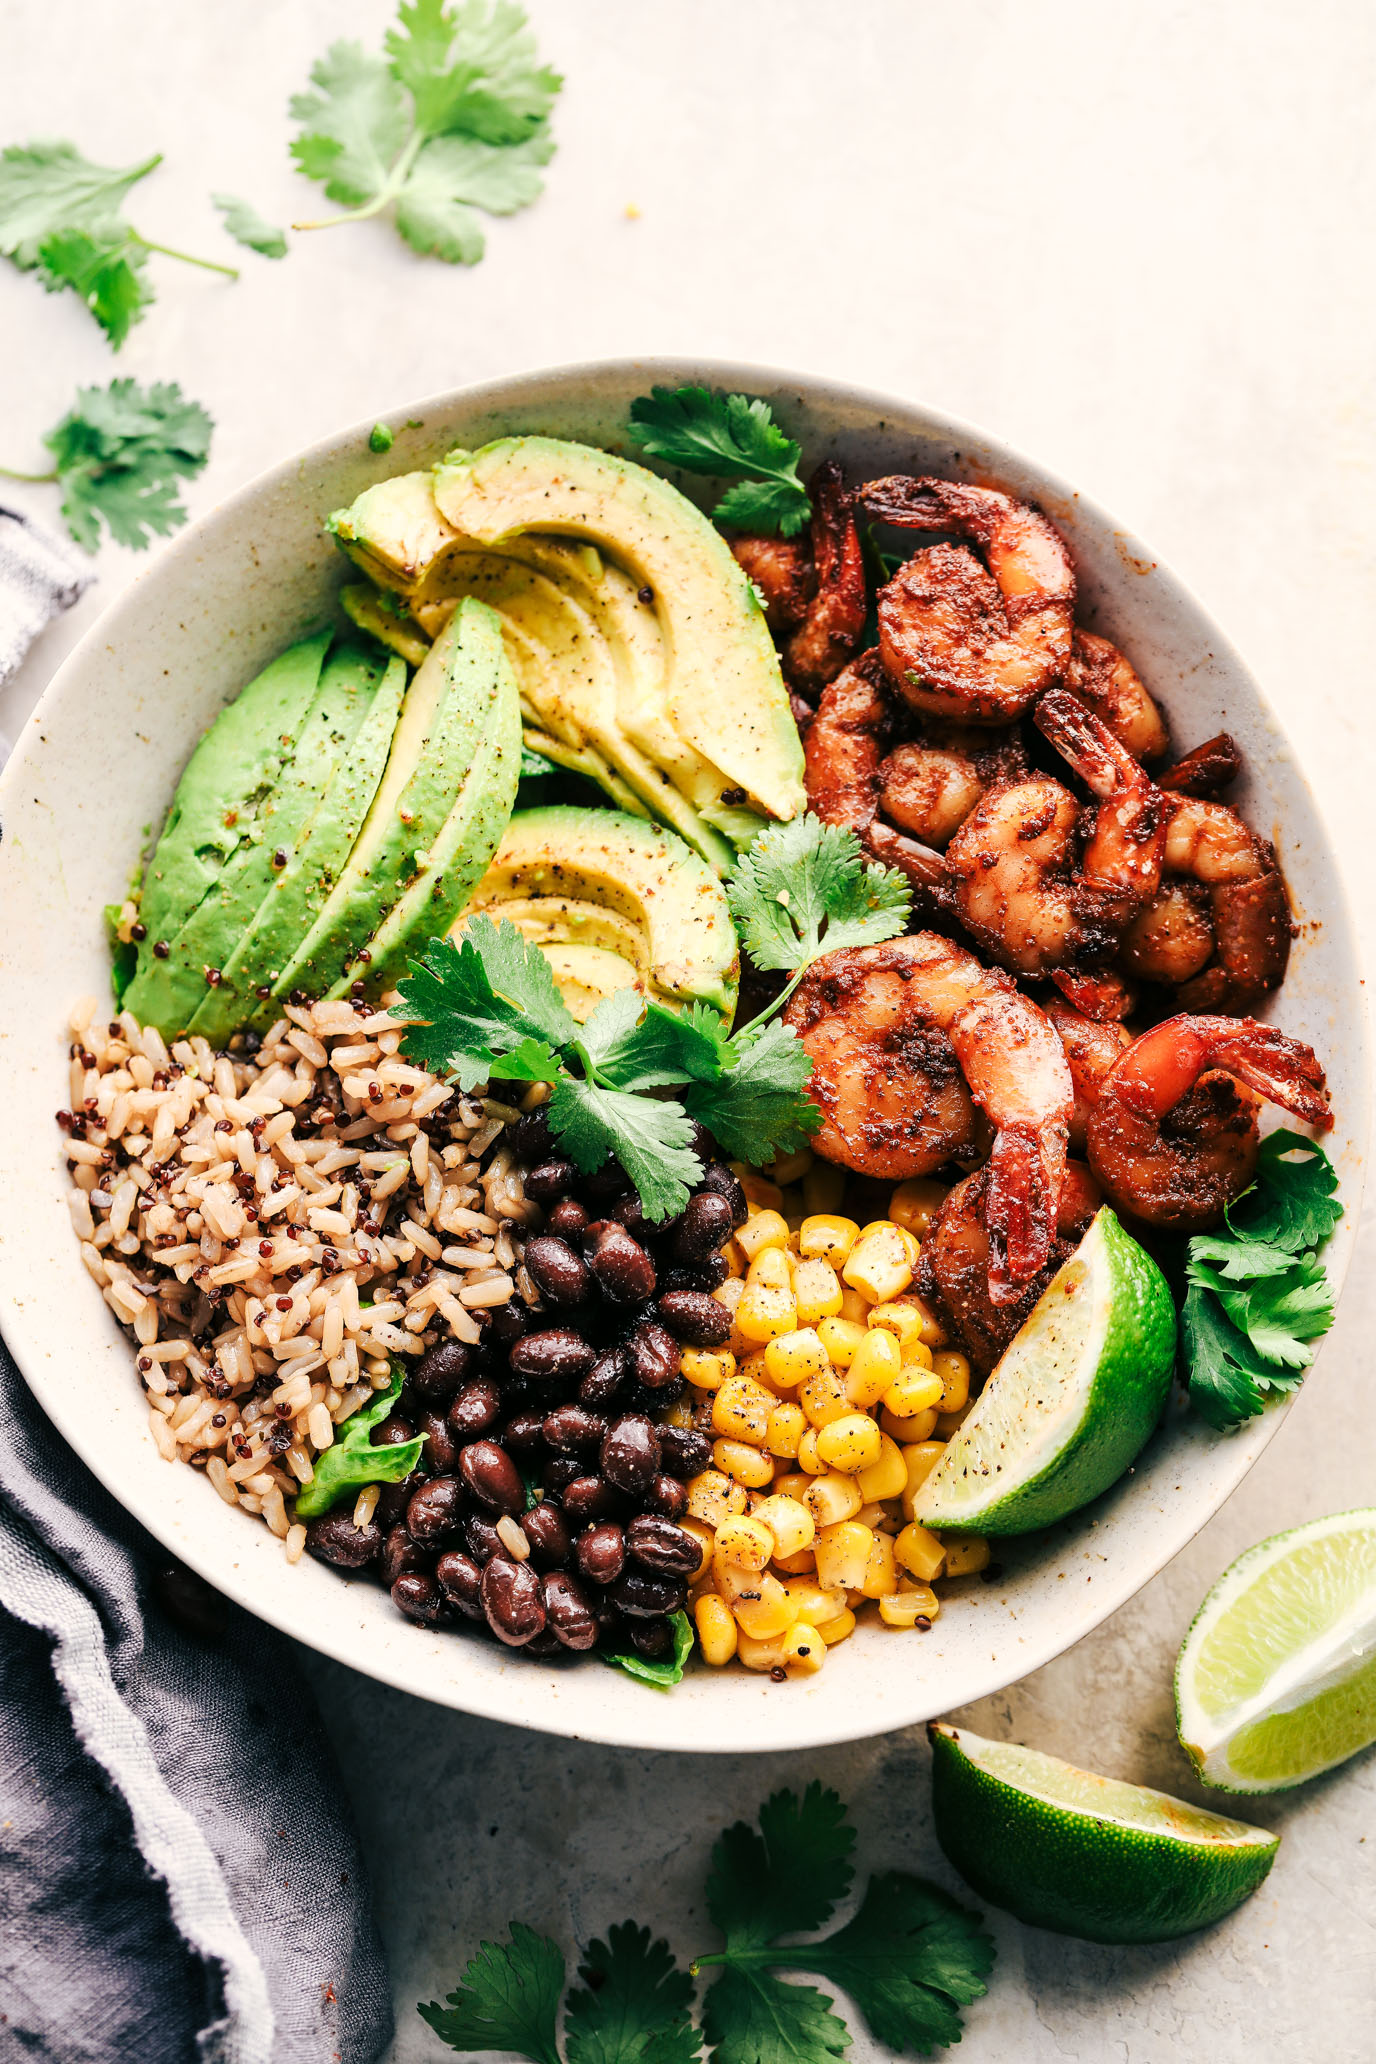 Blackened Shrimp Avocado Burrito Bowls from therecipecritic.com on foodiecrush.com